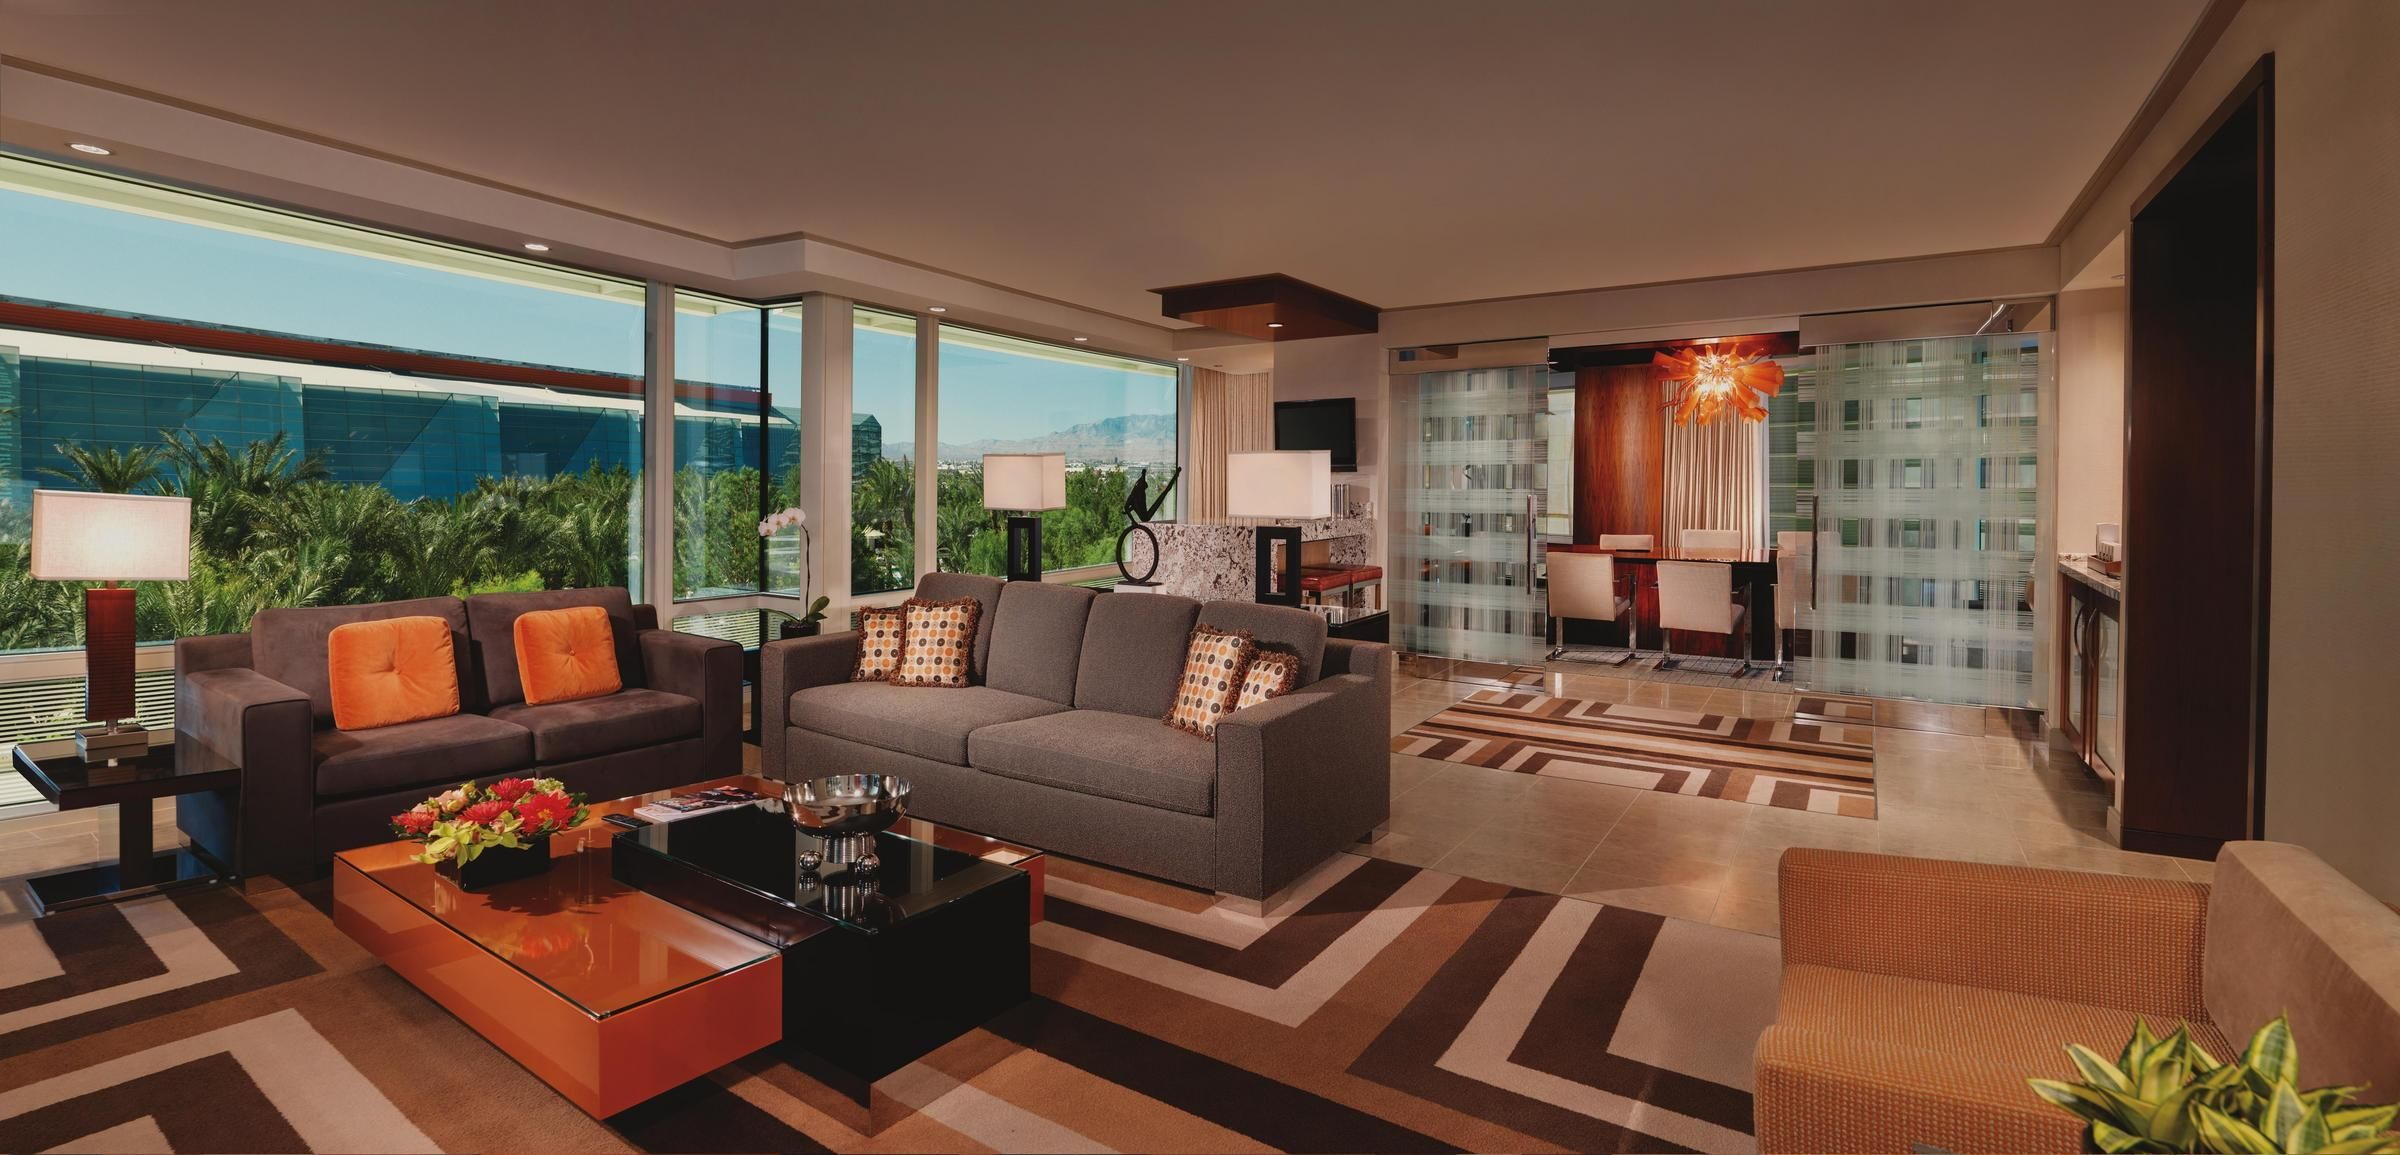 Business trips are now anything but business in ARIA's